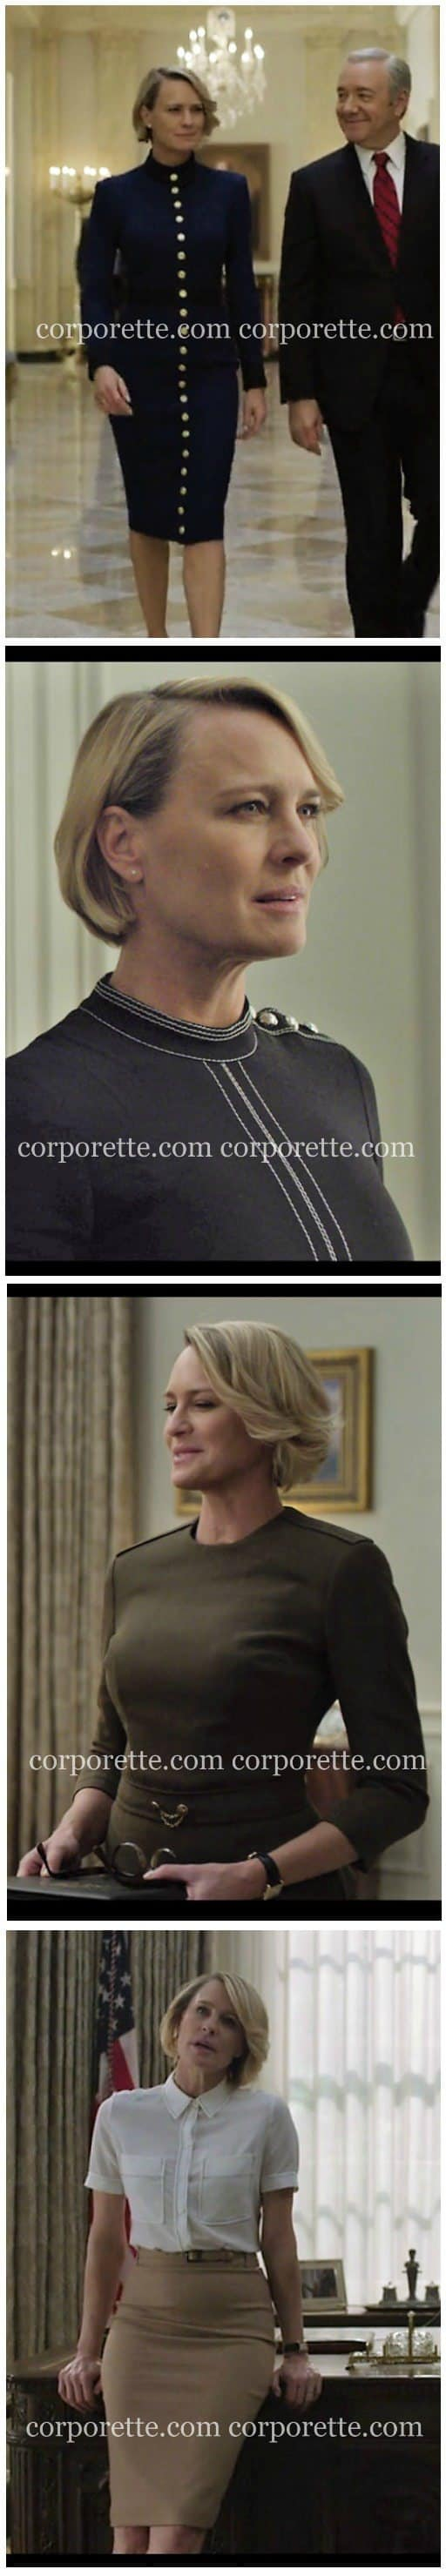 Wondering how to get Claire Underwood style - particularly her more military fashion inspiration from Season 4 of House of Cards? Check out some of our favorite workwear inspiration from Robin Wright's character in House of Cards.